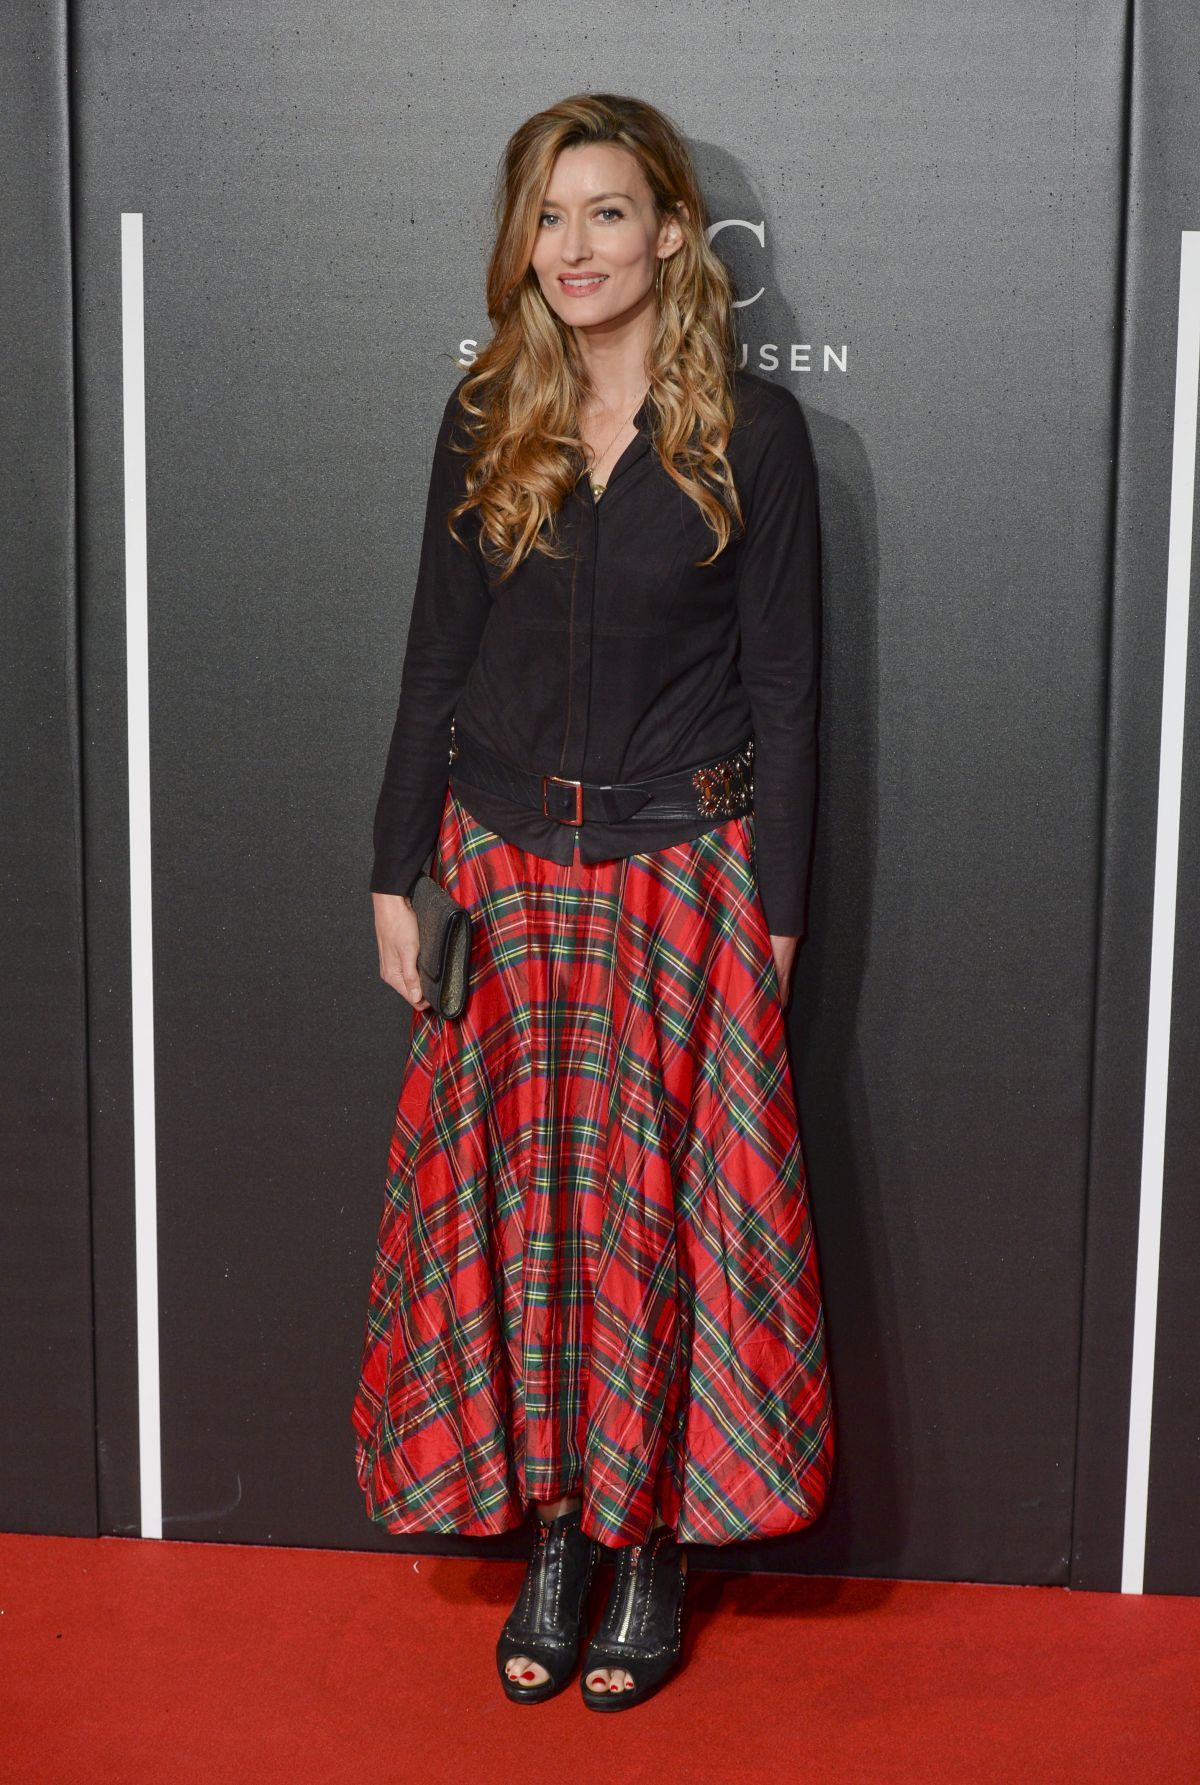 NATASCHA MCELHONE at BFI Luminous Fundraising Gala in London 10/06/2015